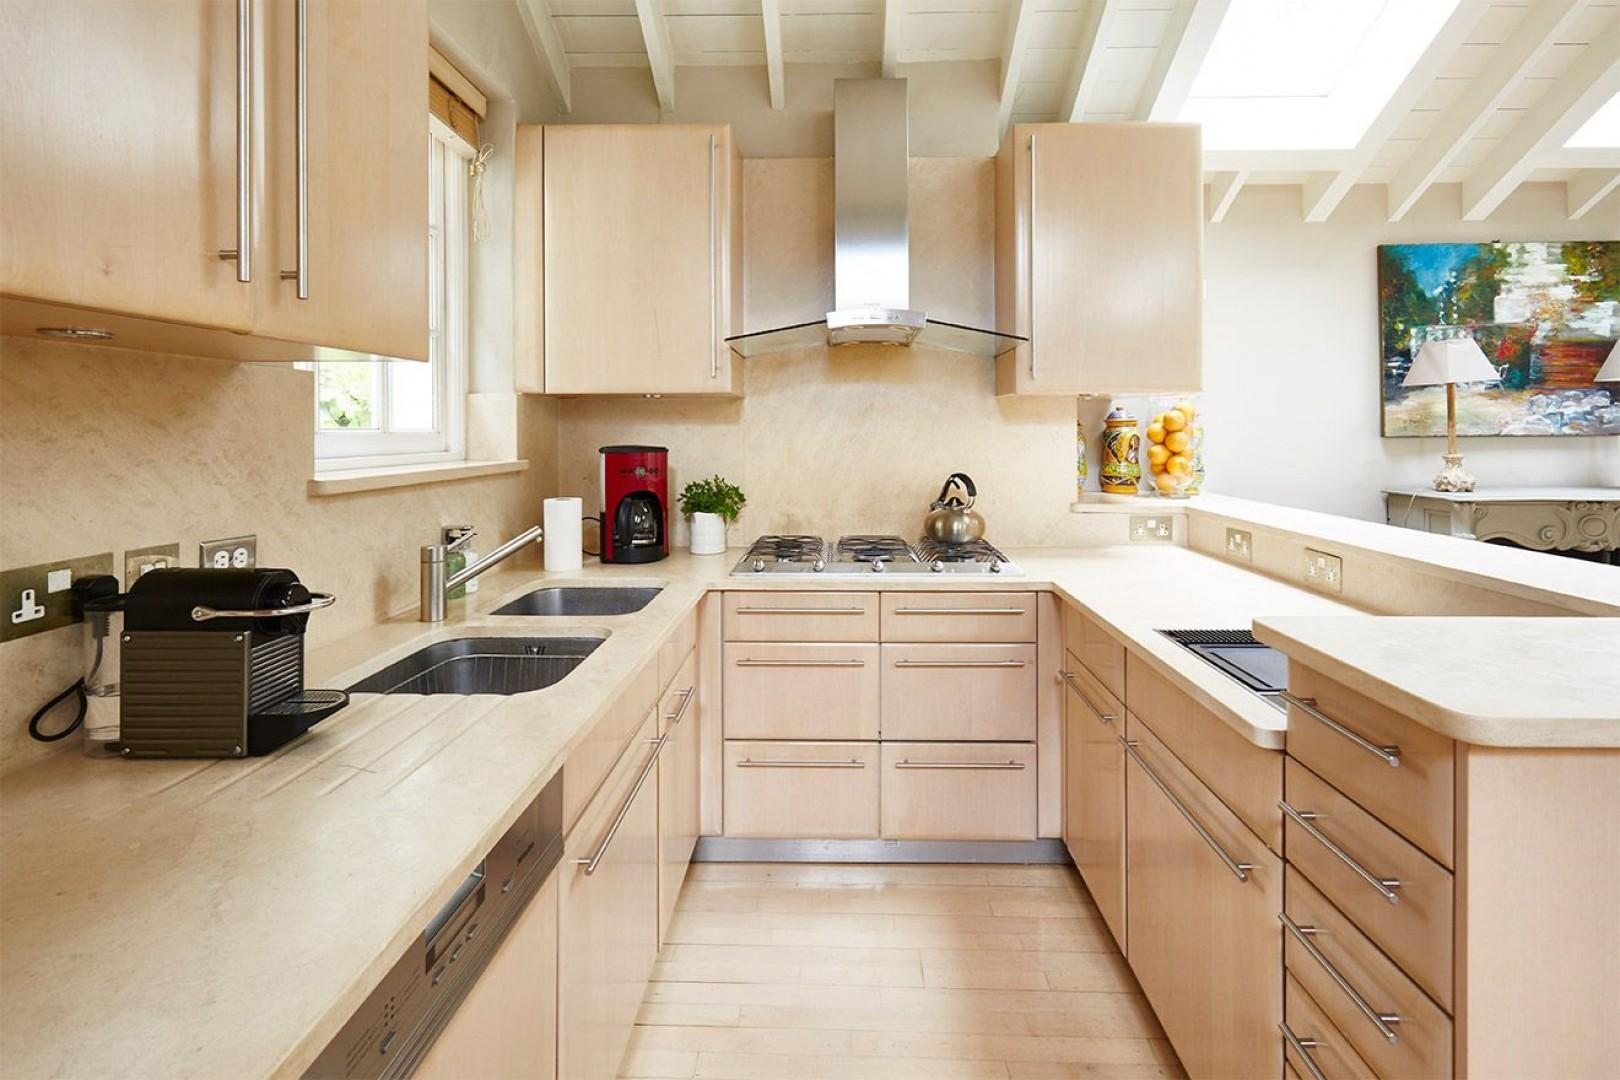 Large kitchen is fully equipped with everything you need